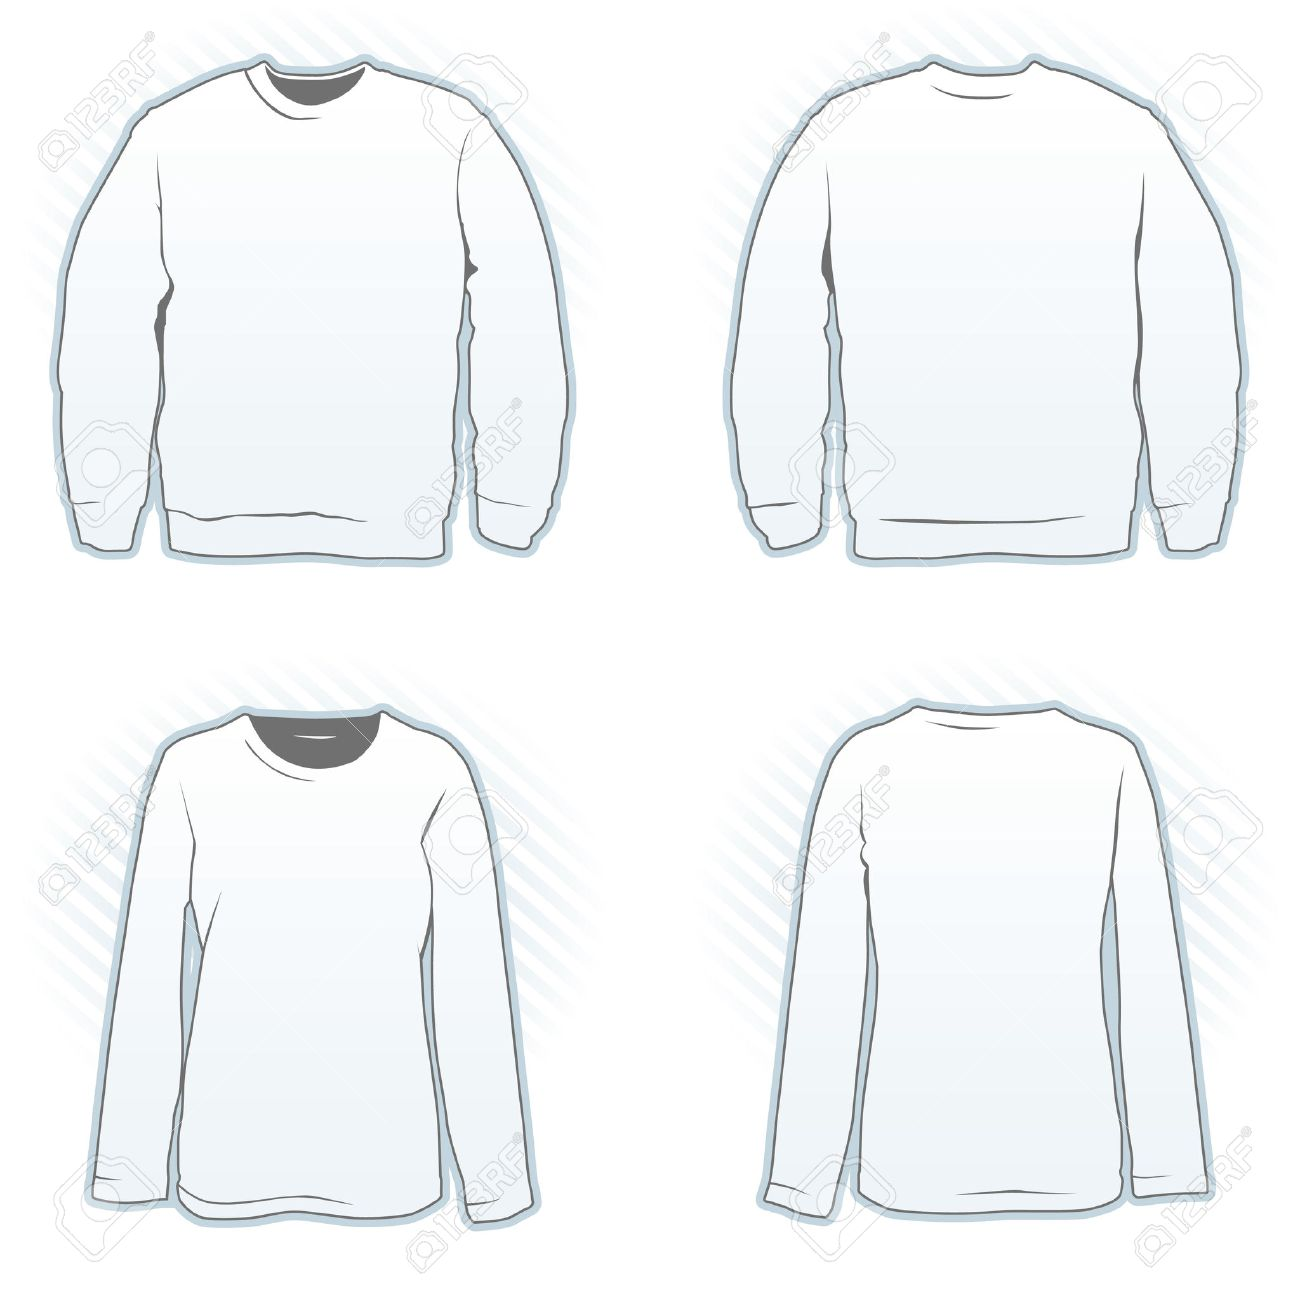 Sweatshirt Design Template Set Male And Female Front And Back - Sweatshirt design template